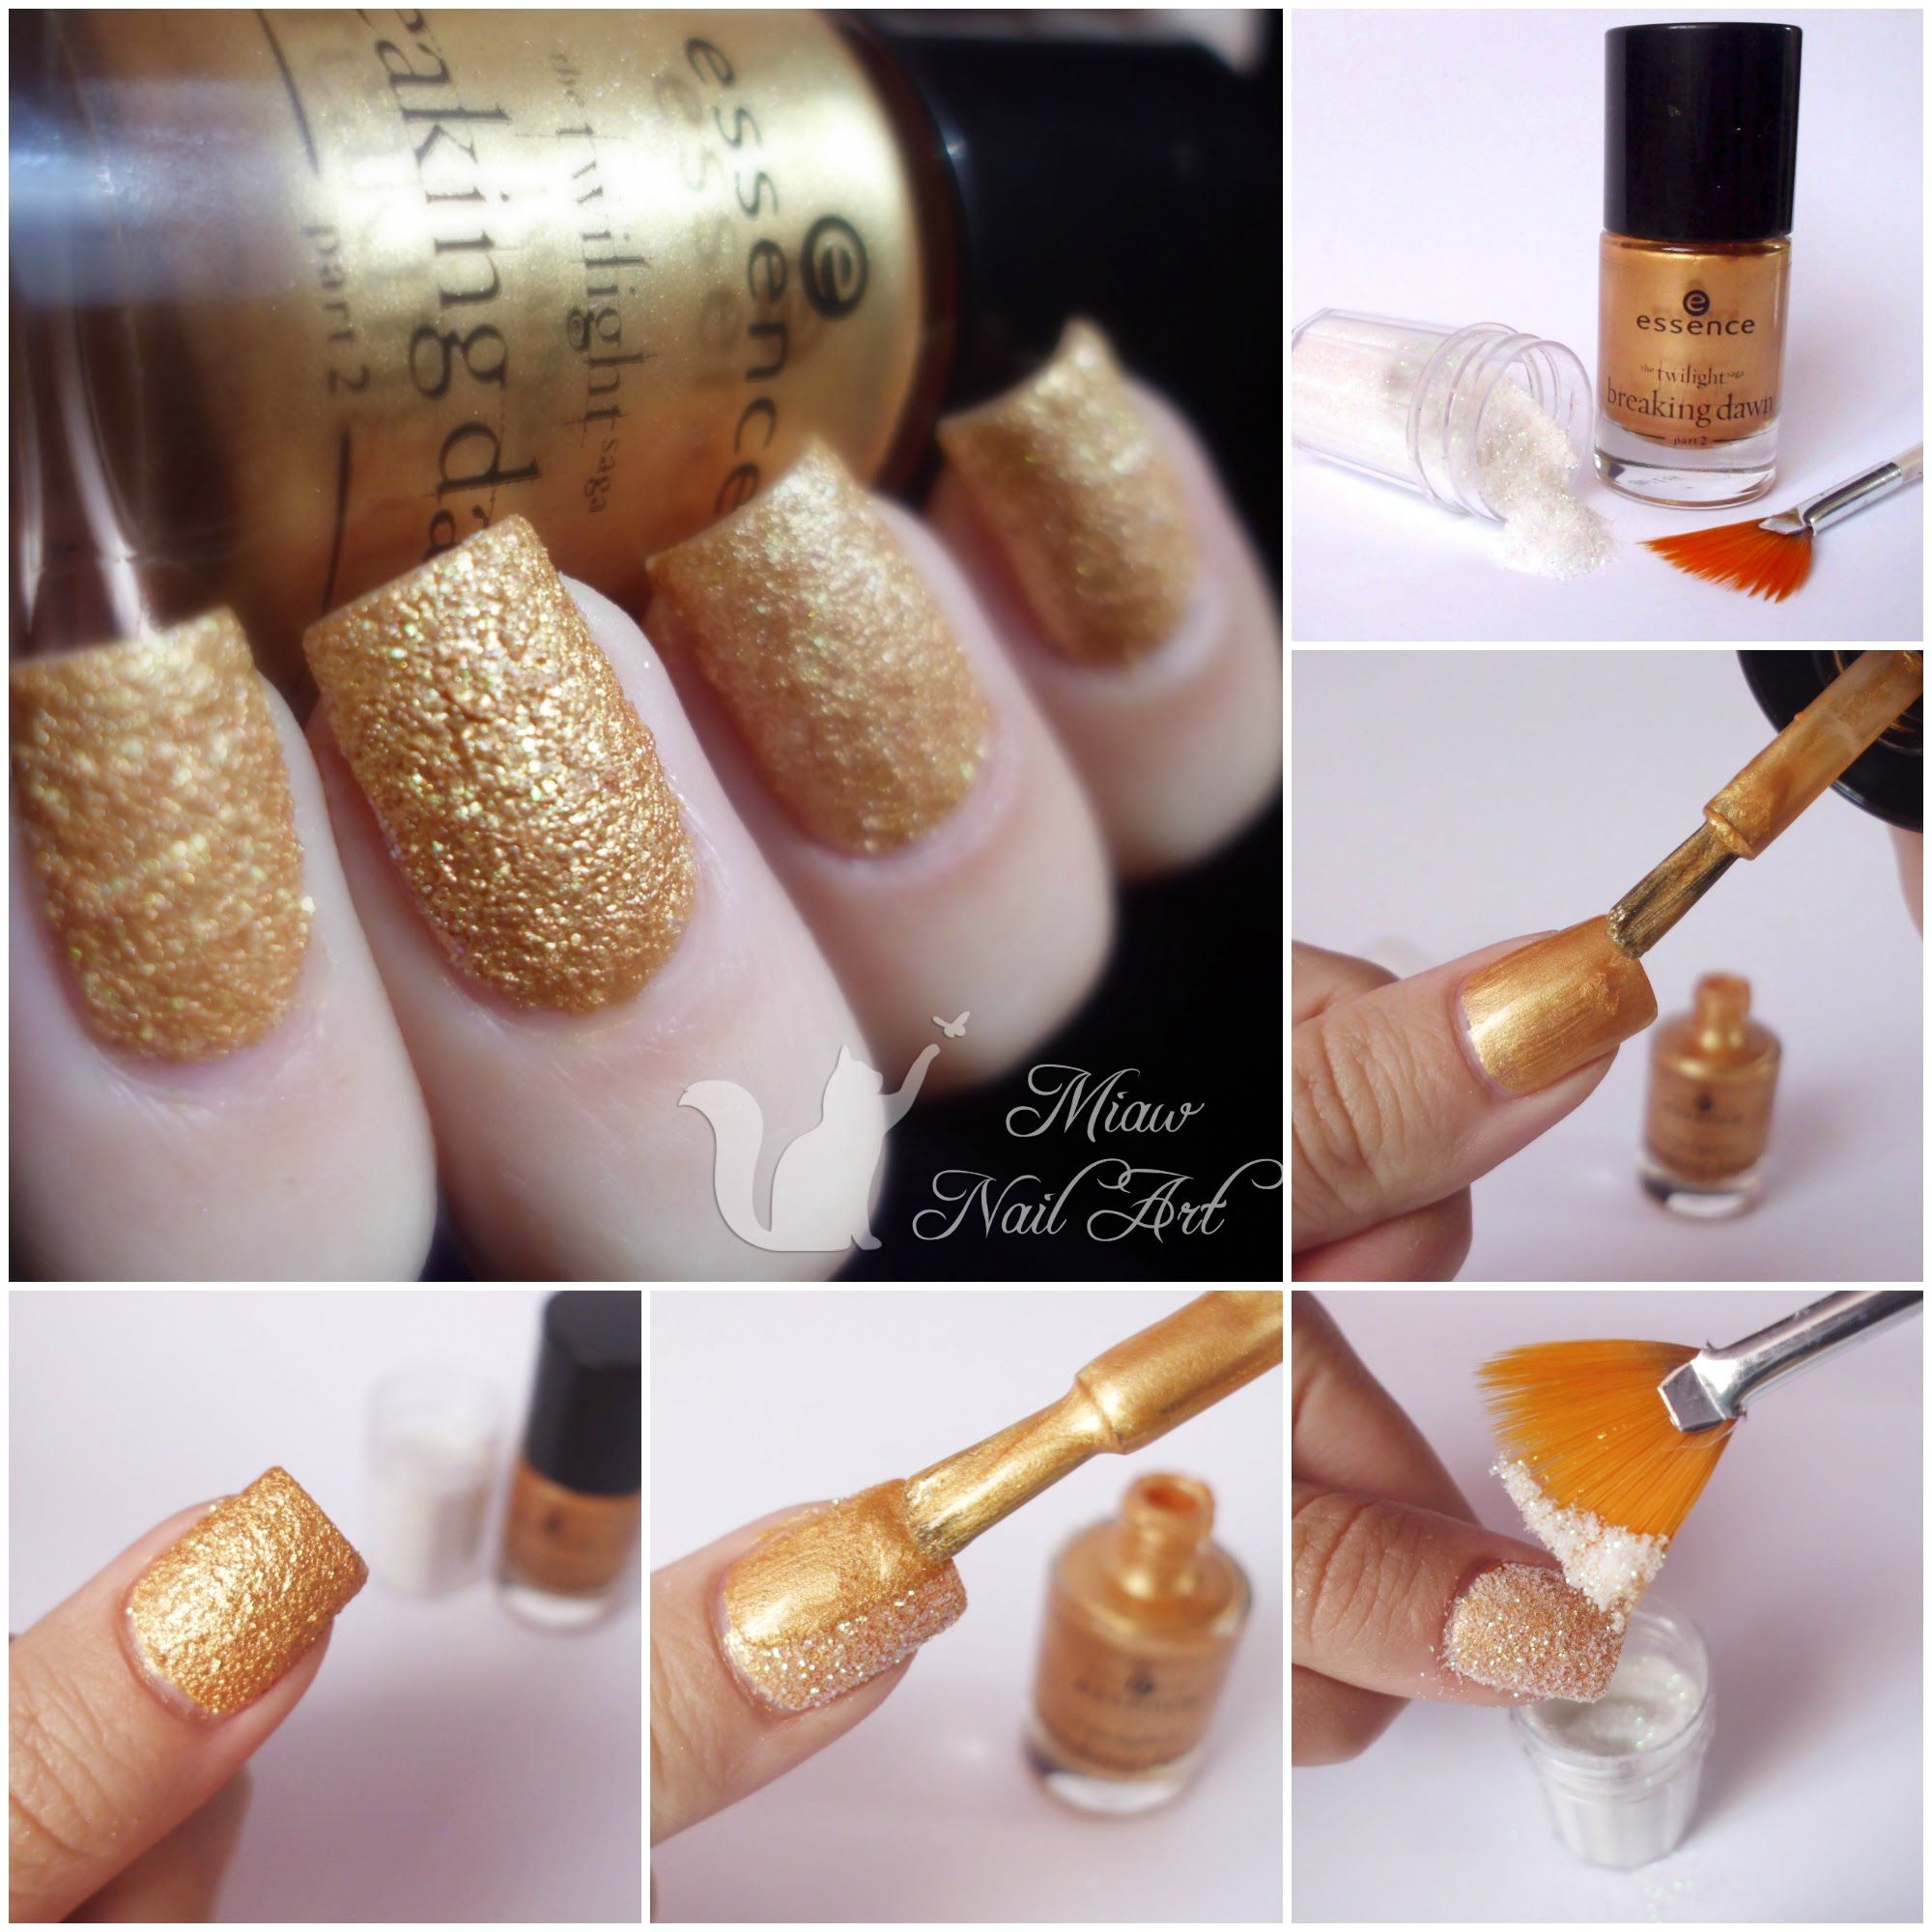 base coat cnd stickey base colour rimmel french rose golds miss sporty gold backstage h wa wa woom acrylic white paint glitter f pinteres